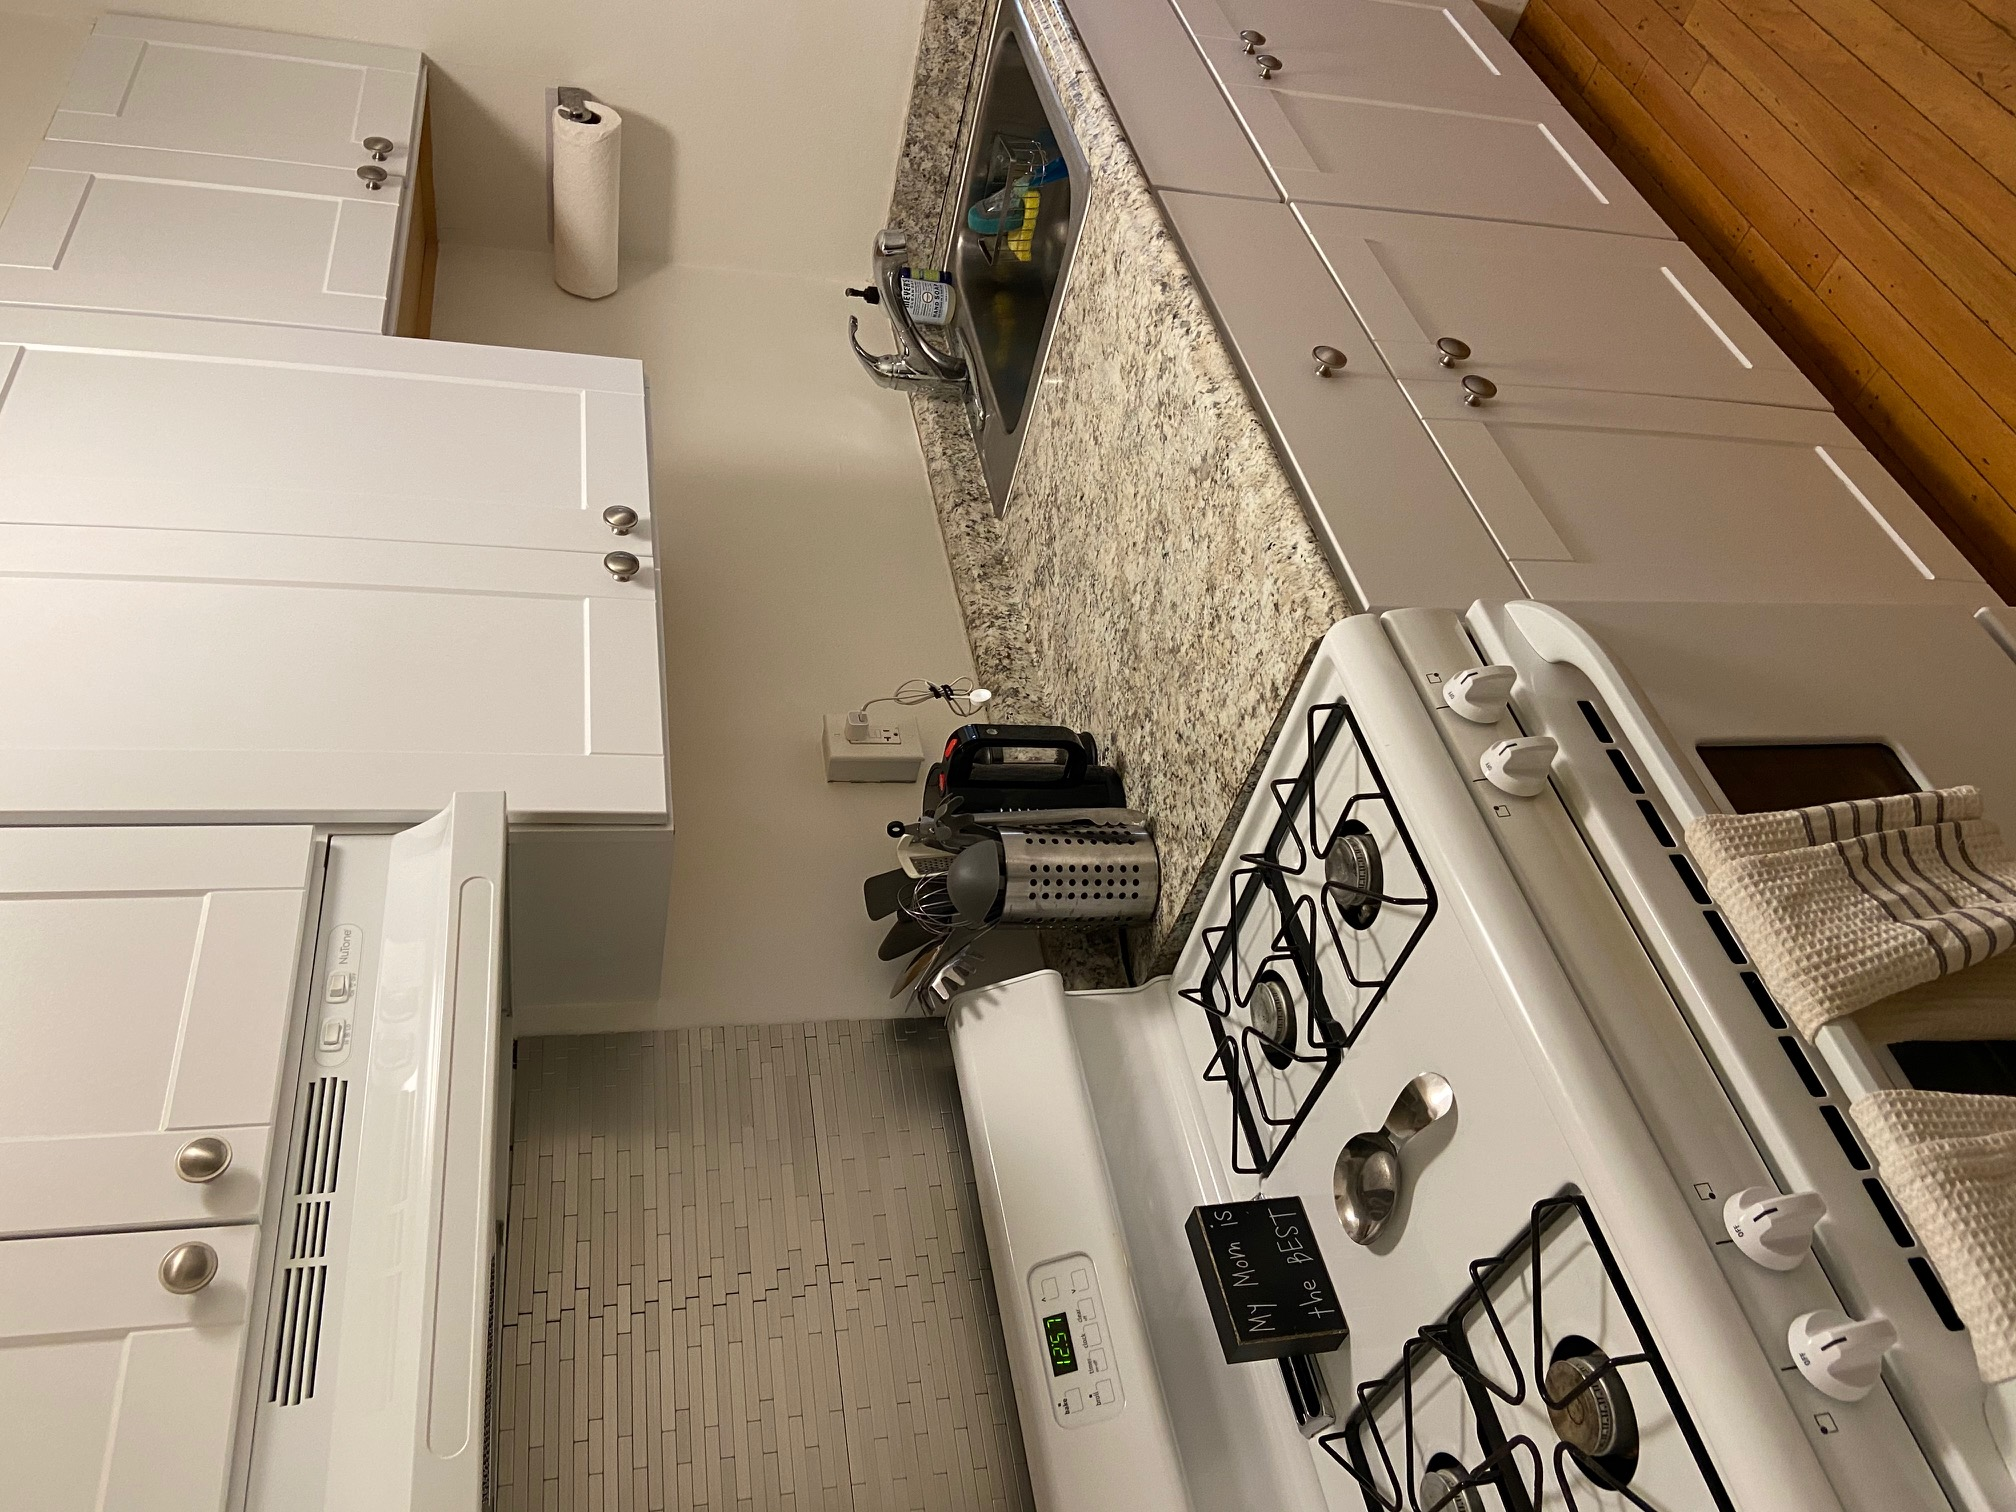 1 Bed, 1 Bath apartment in Boston, North End for $1,950